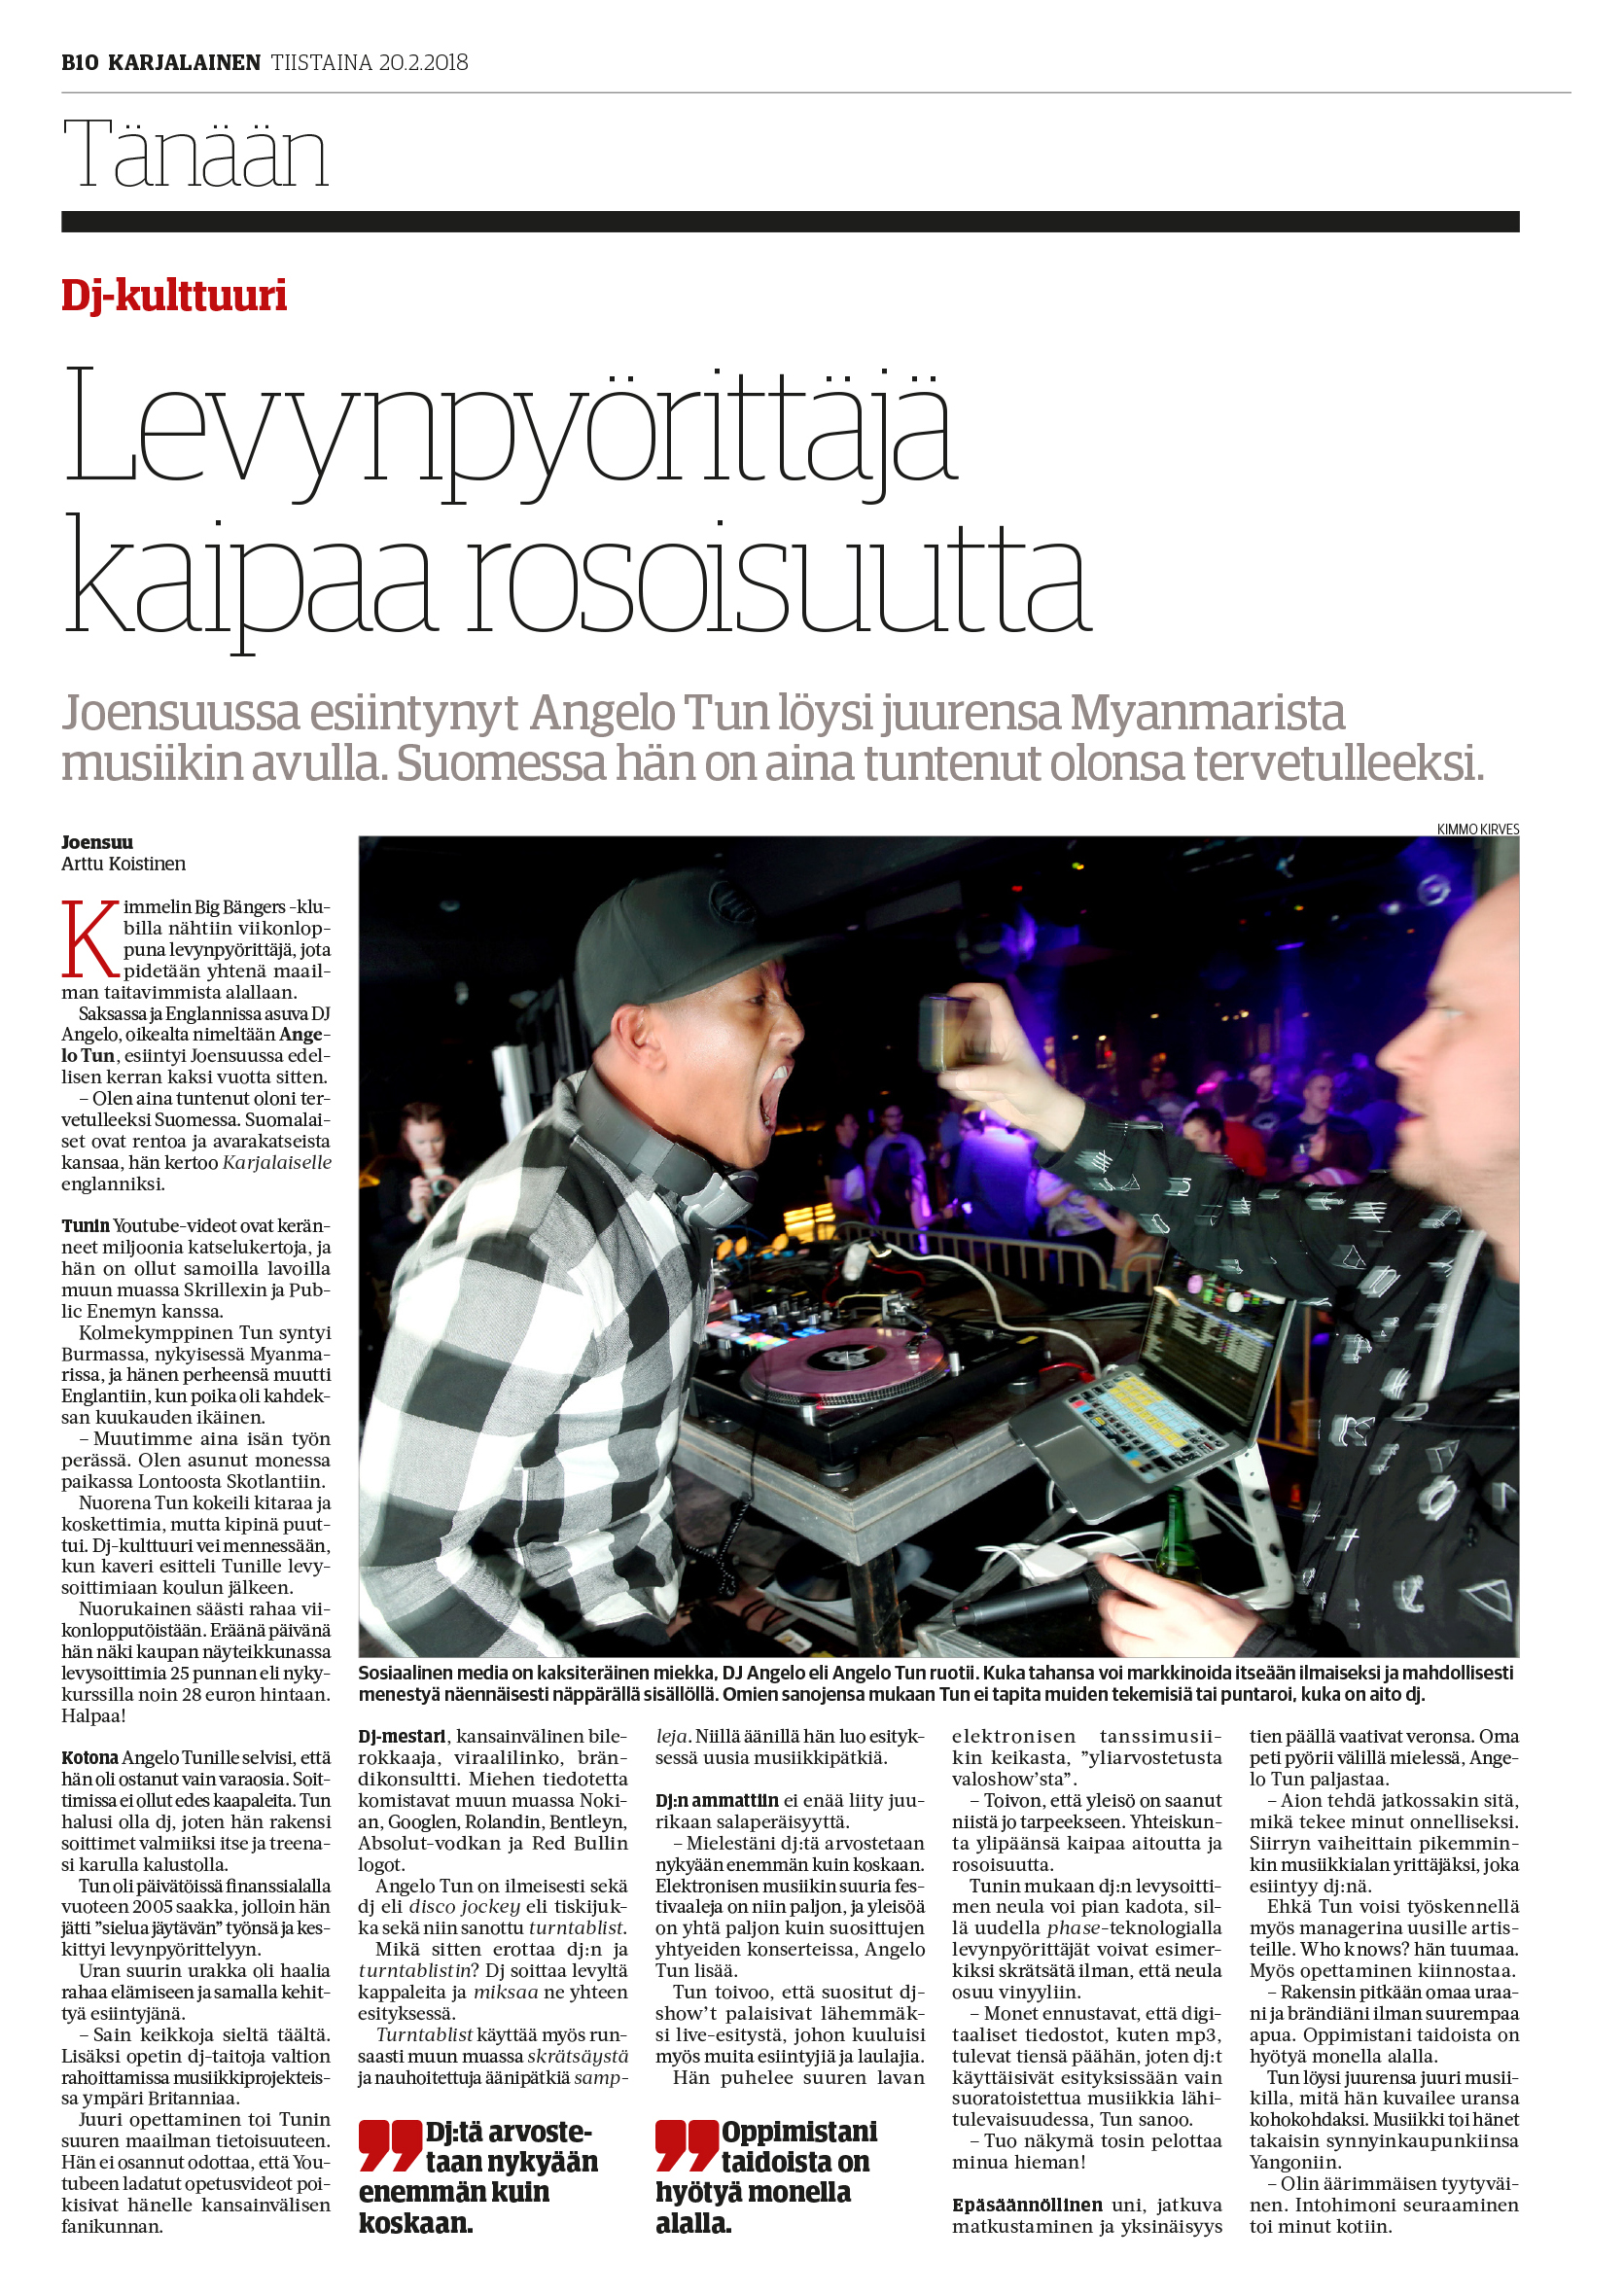 Interview for KARJALAINEN (national newspaper of Finland)